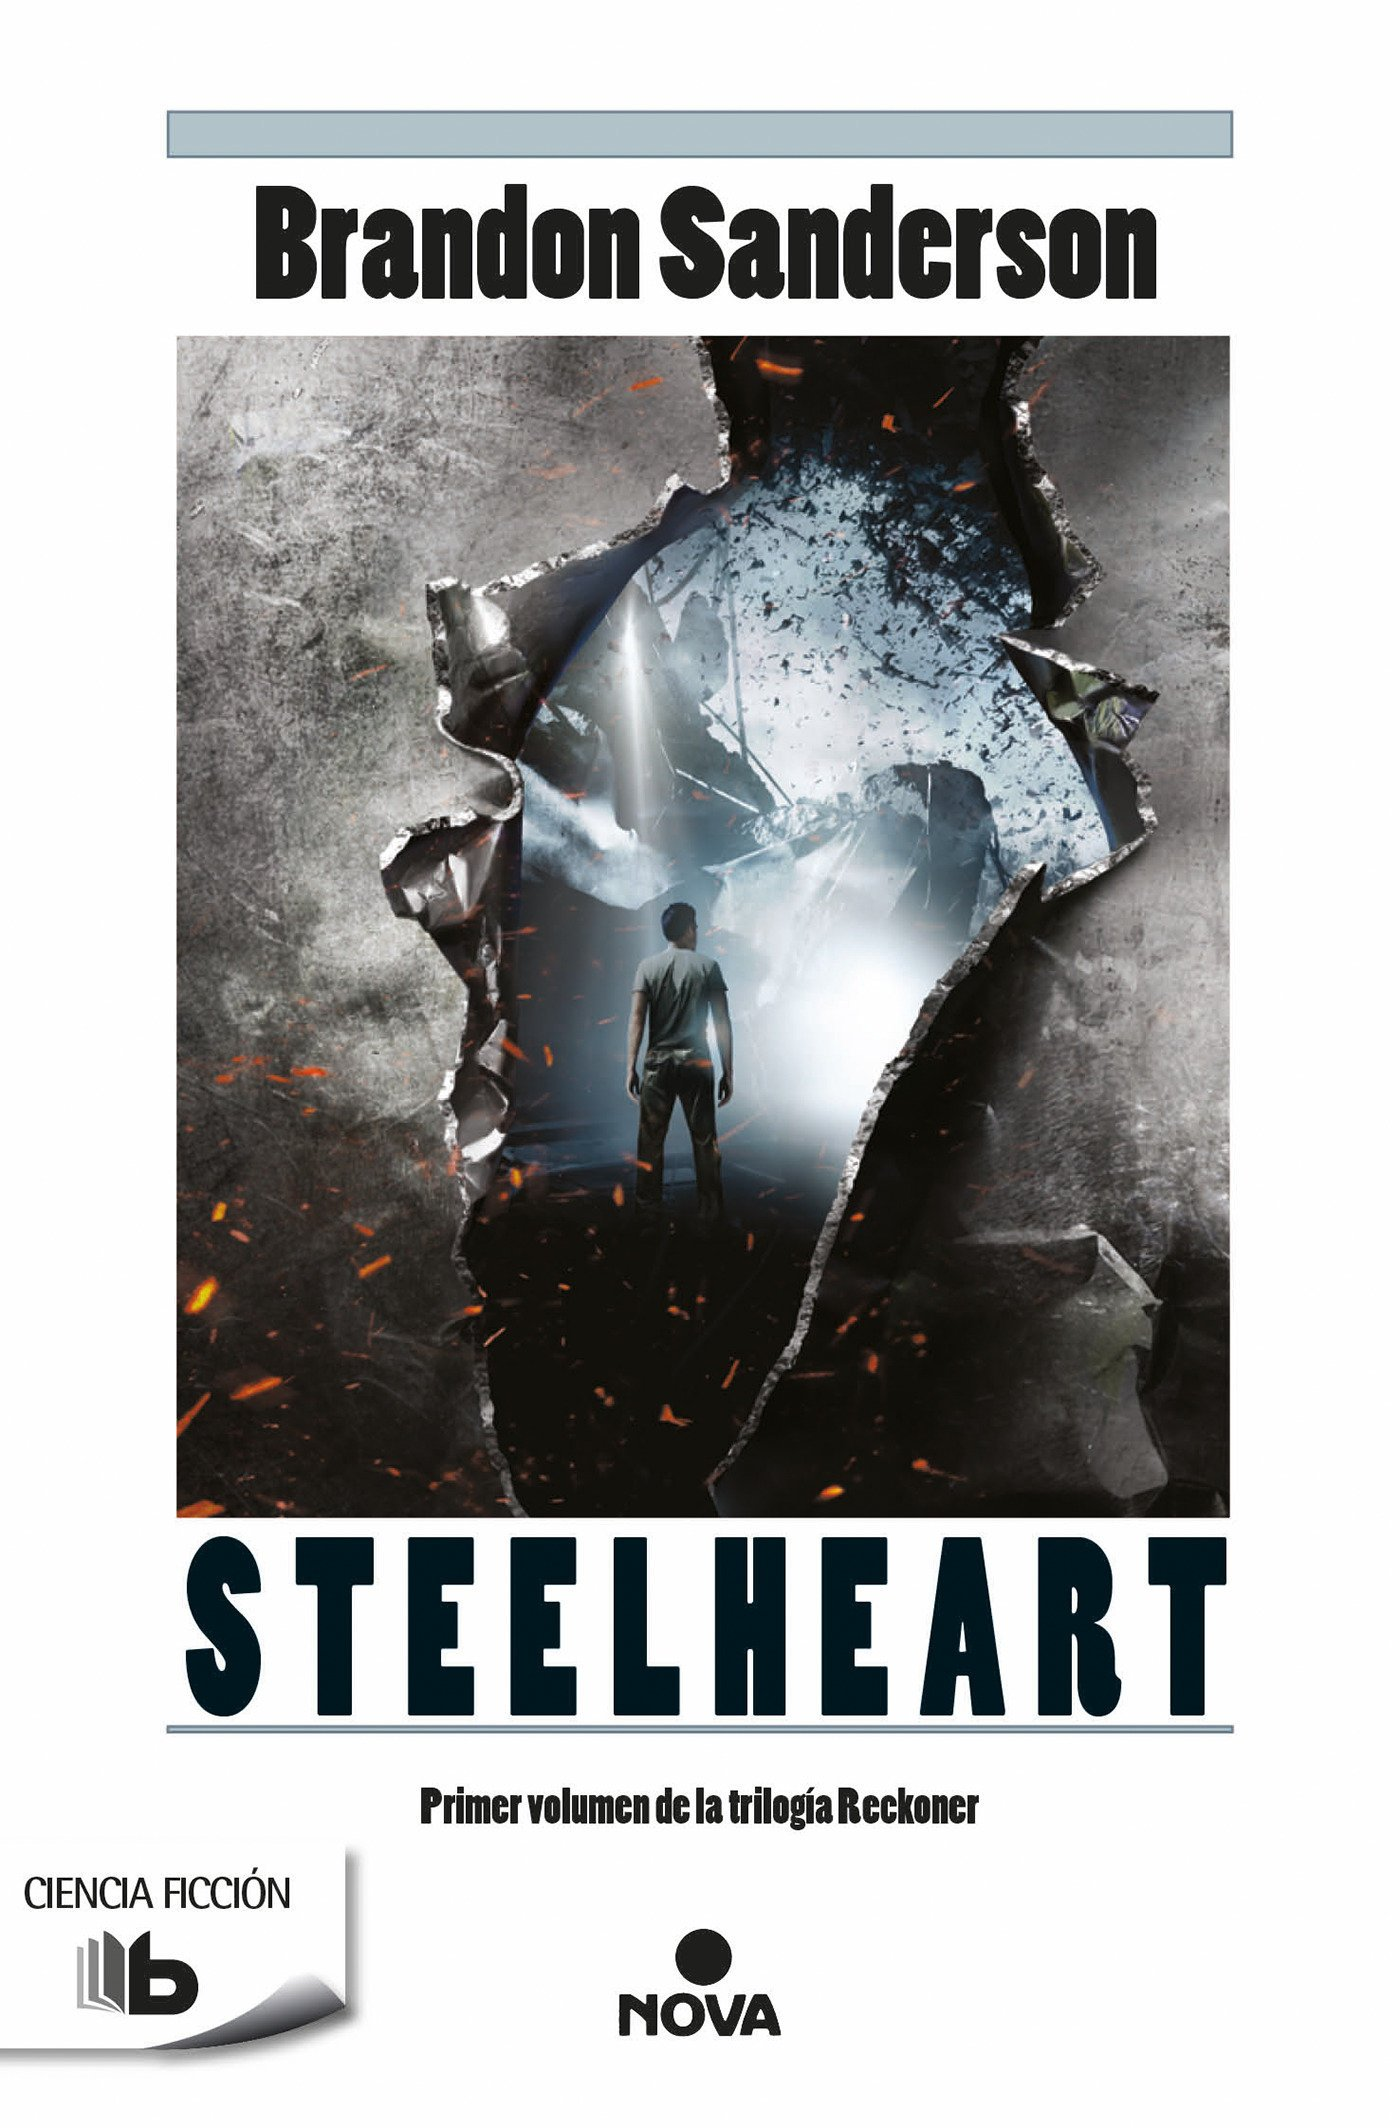 Steelheart (Trilogía de los Reckoners 1) (B DE BOLSILLO) Tapa blanda – 10 jun 2015 Brandon Sanderson Bbolsillo 8490700958 Guerrilla warfare; Fiction.